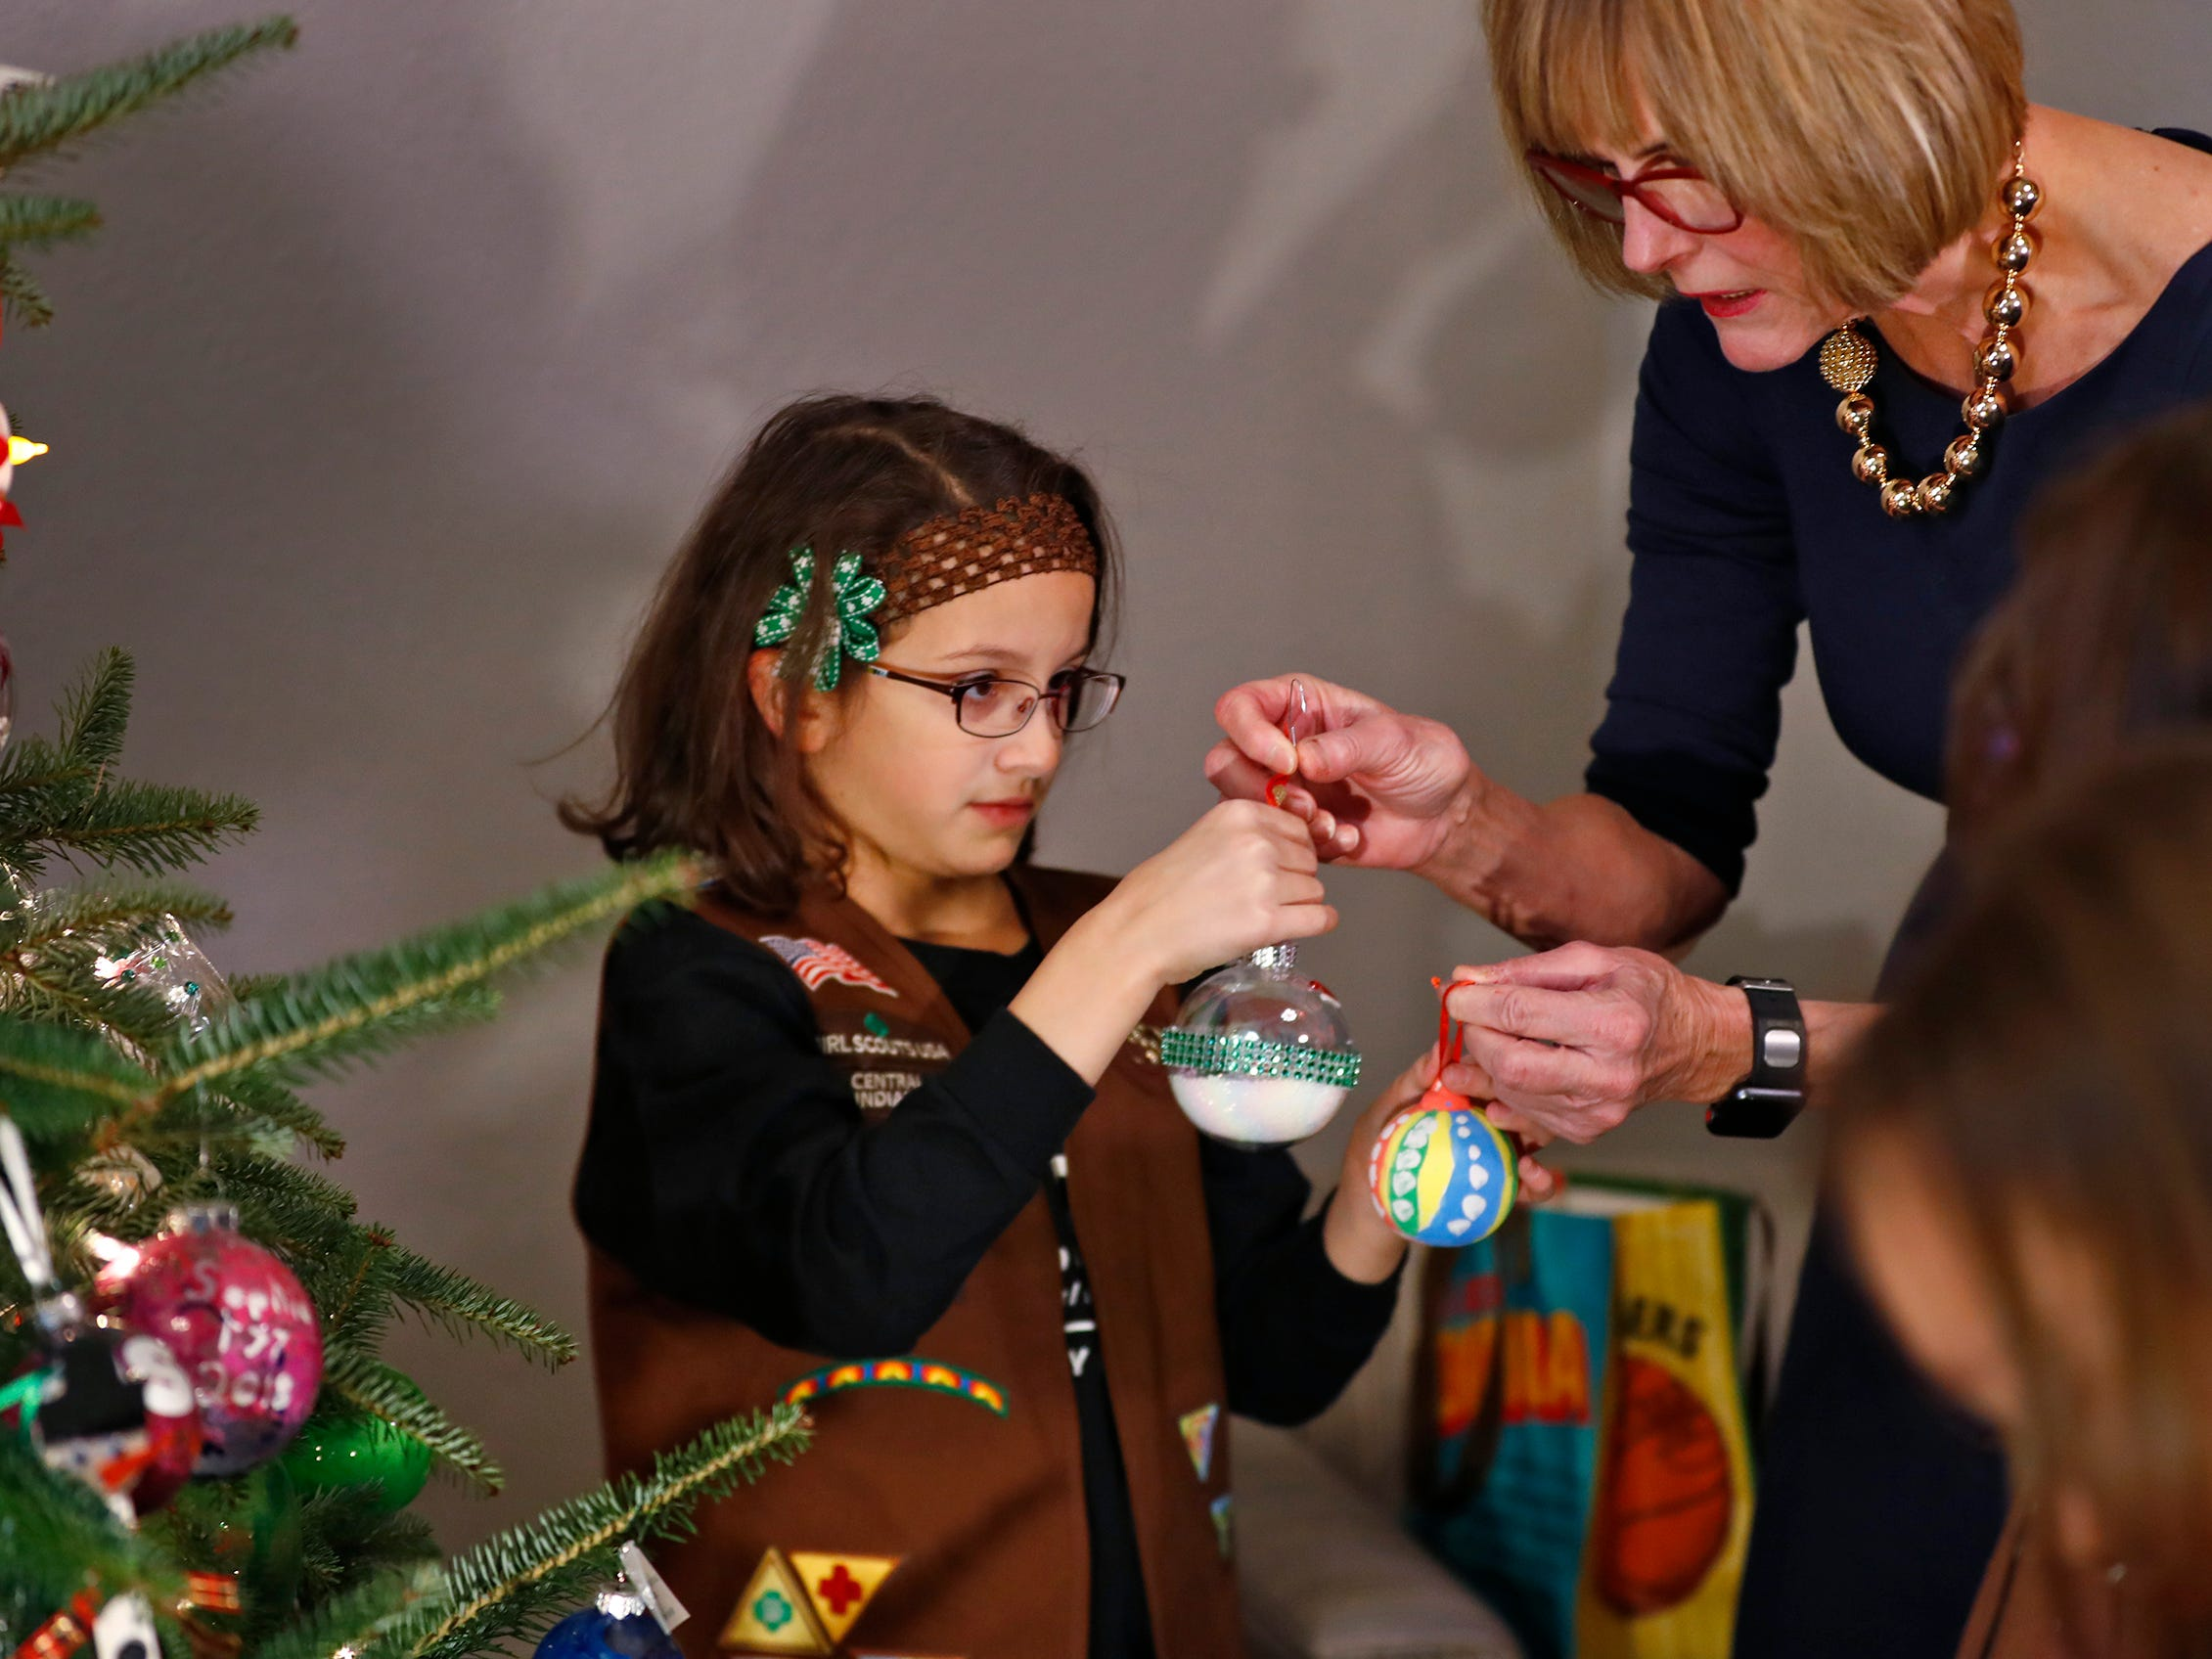 Ivy Lara, left, and other Brownies join Lieutenant Governor Suzanne Crouch, right, to decorate her Indiana Statehouse tree for the holidays, Wednesday, Dec. 5, 2018.  They used ornaments created by Girl Scouts from across Central Indiana for the tree.